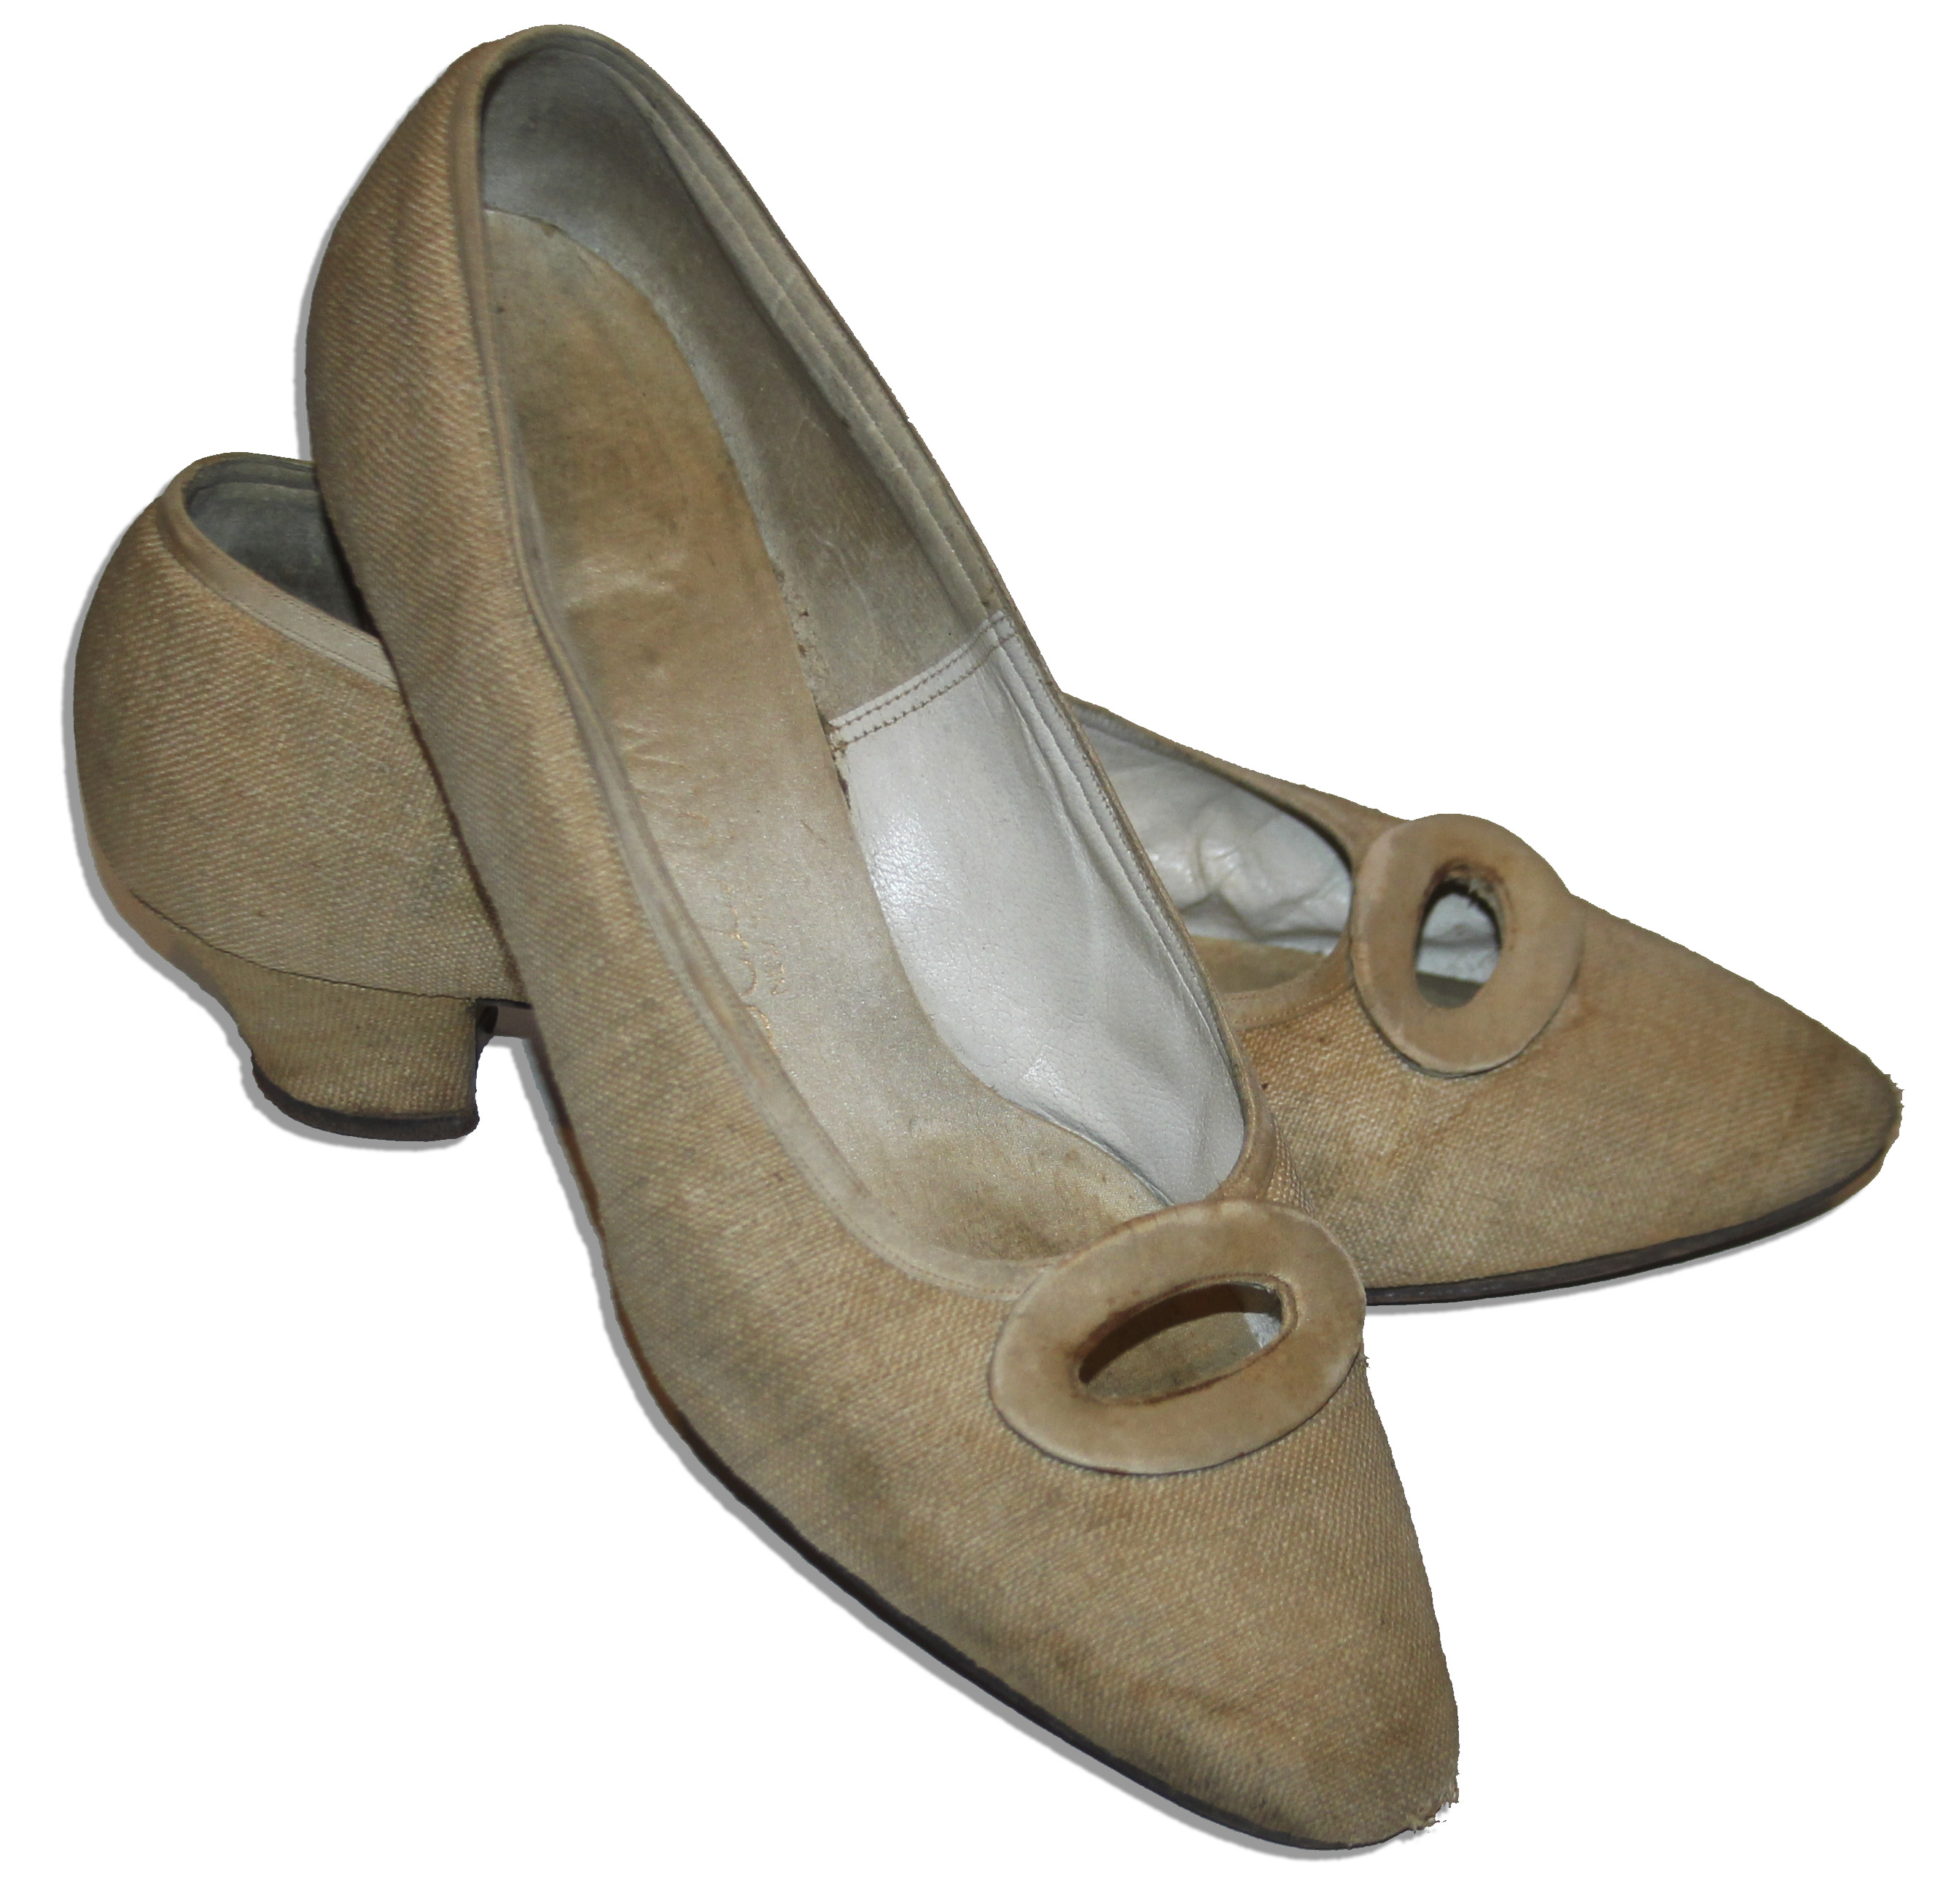 Jackie Kennedy Personally Owned Worn Delman Shoes